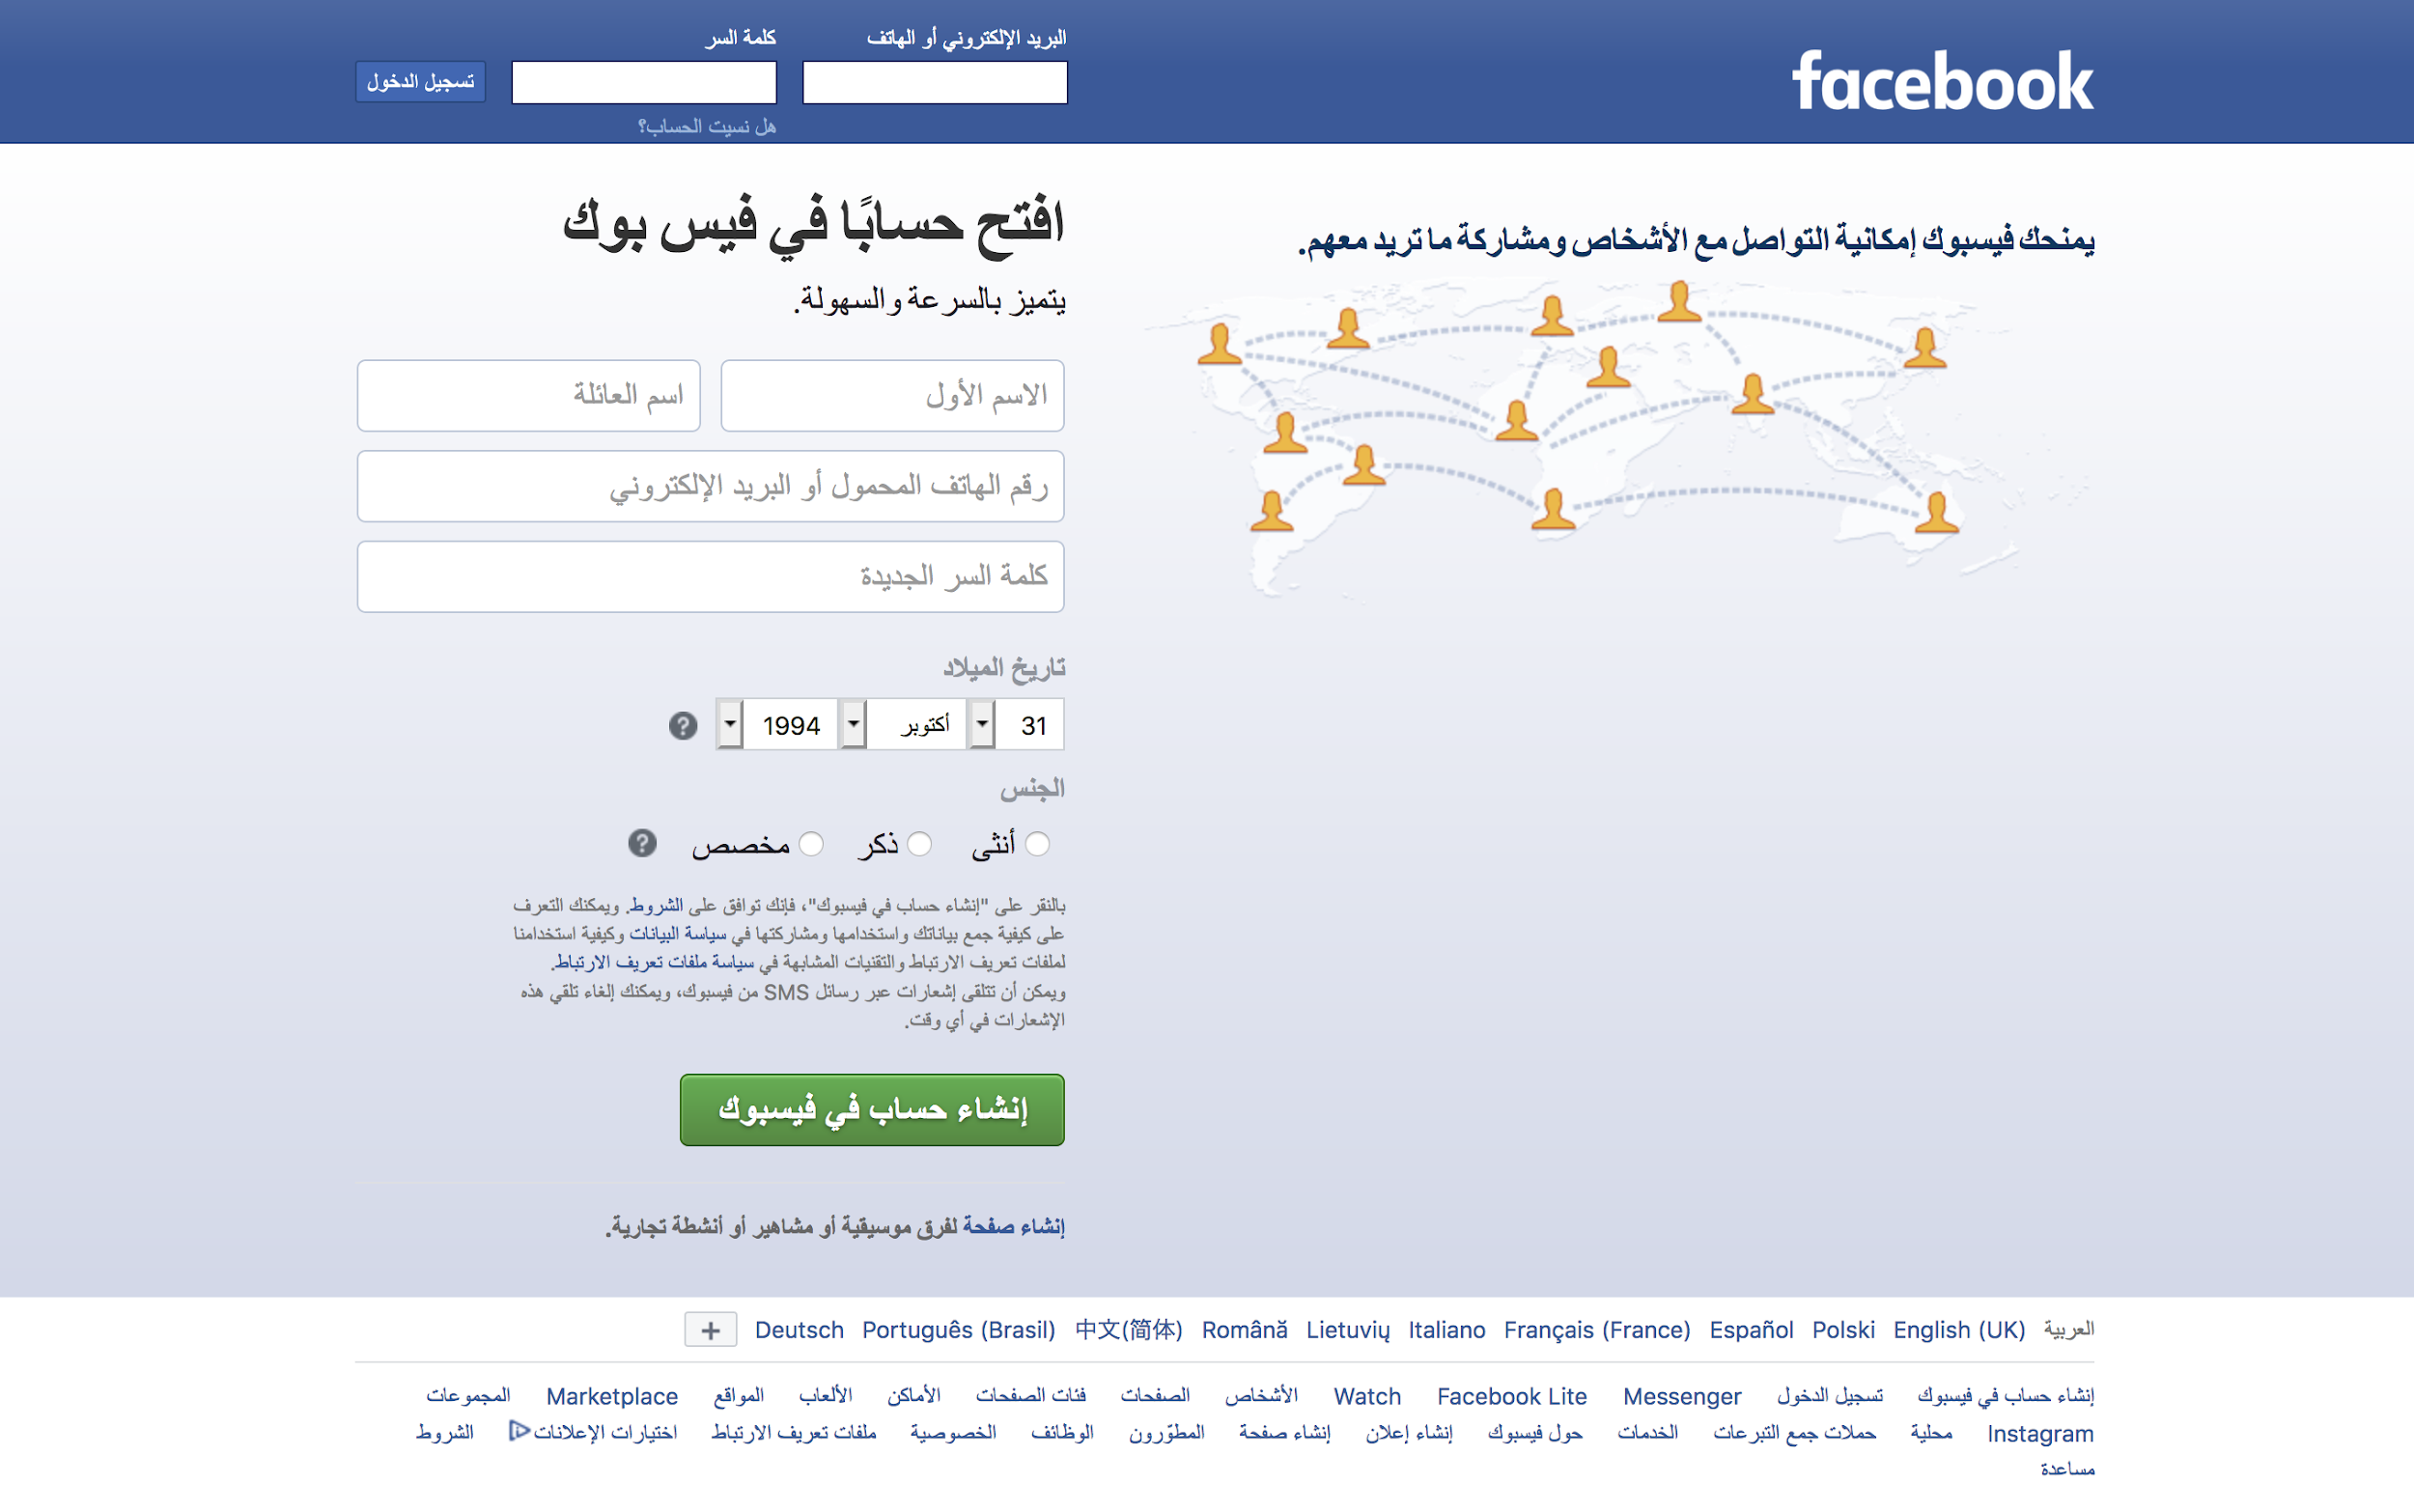 Cross-cultural user interface design Facebook in Arabic